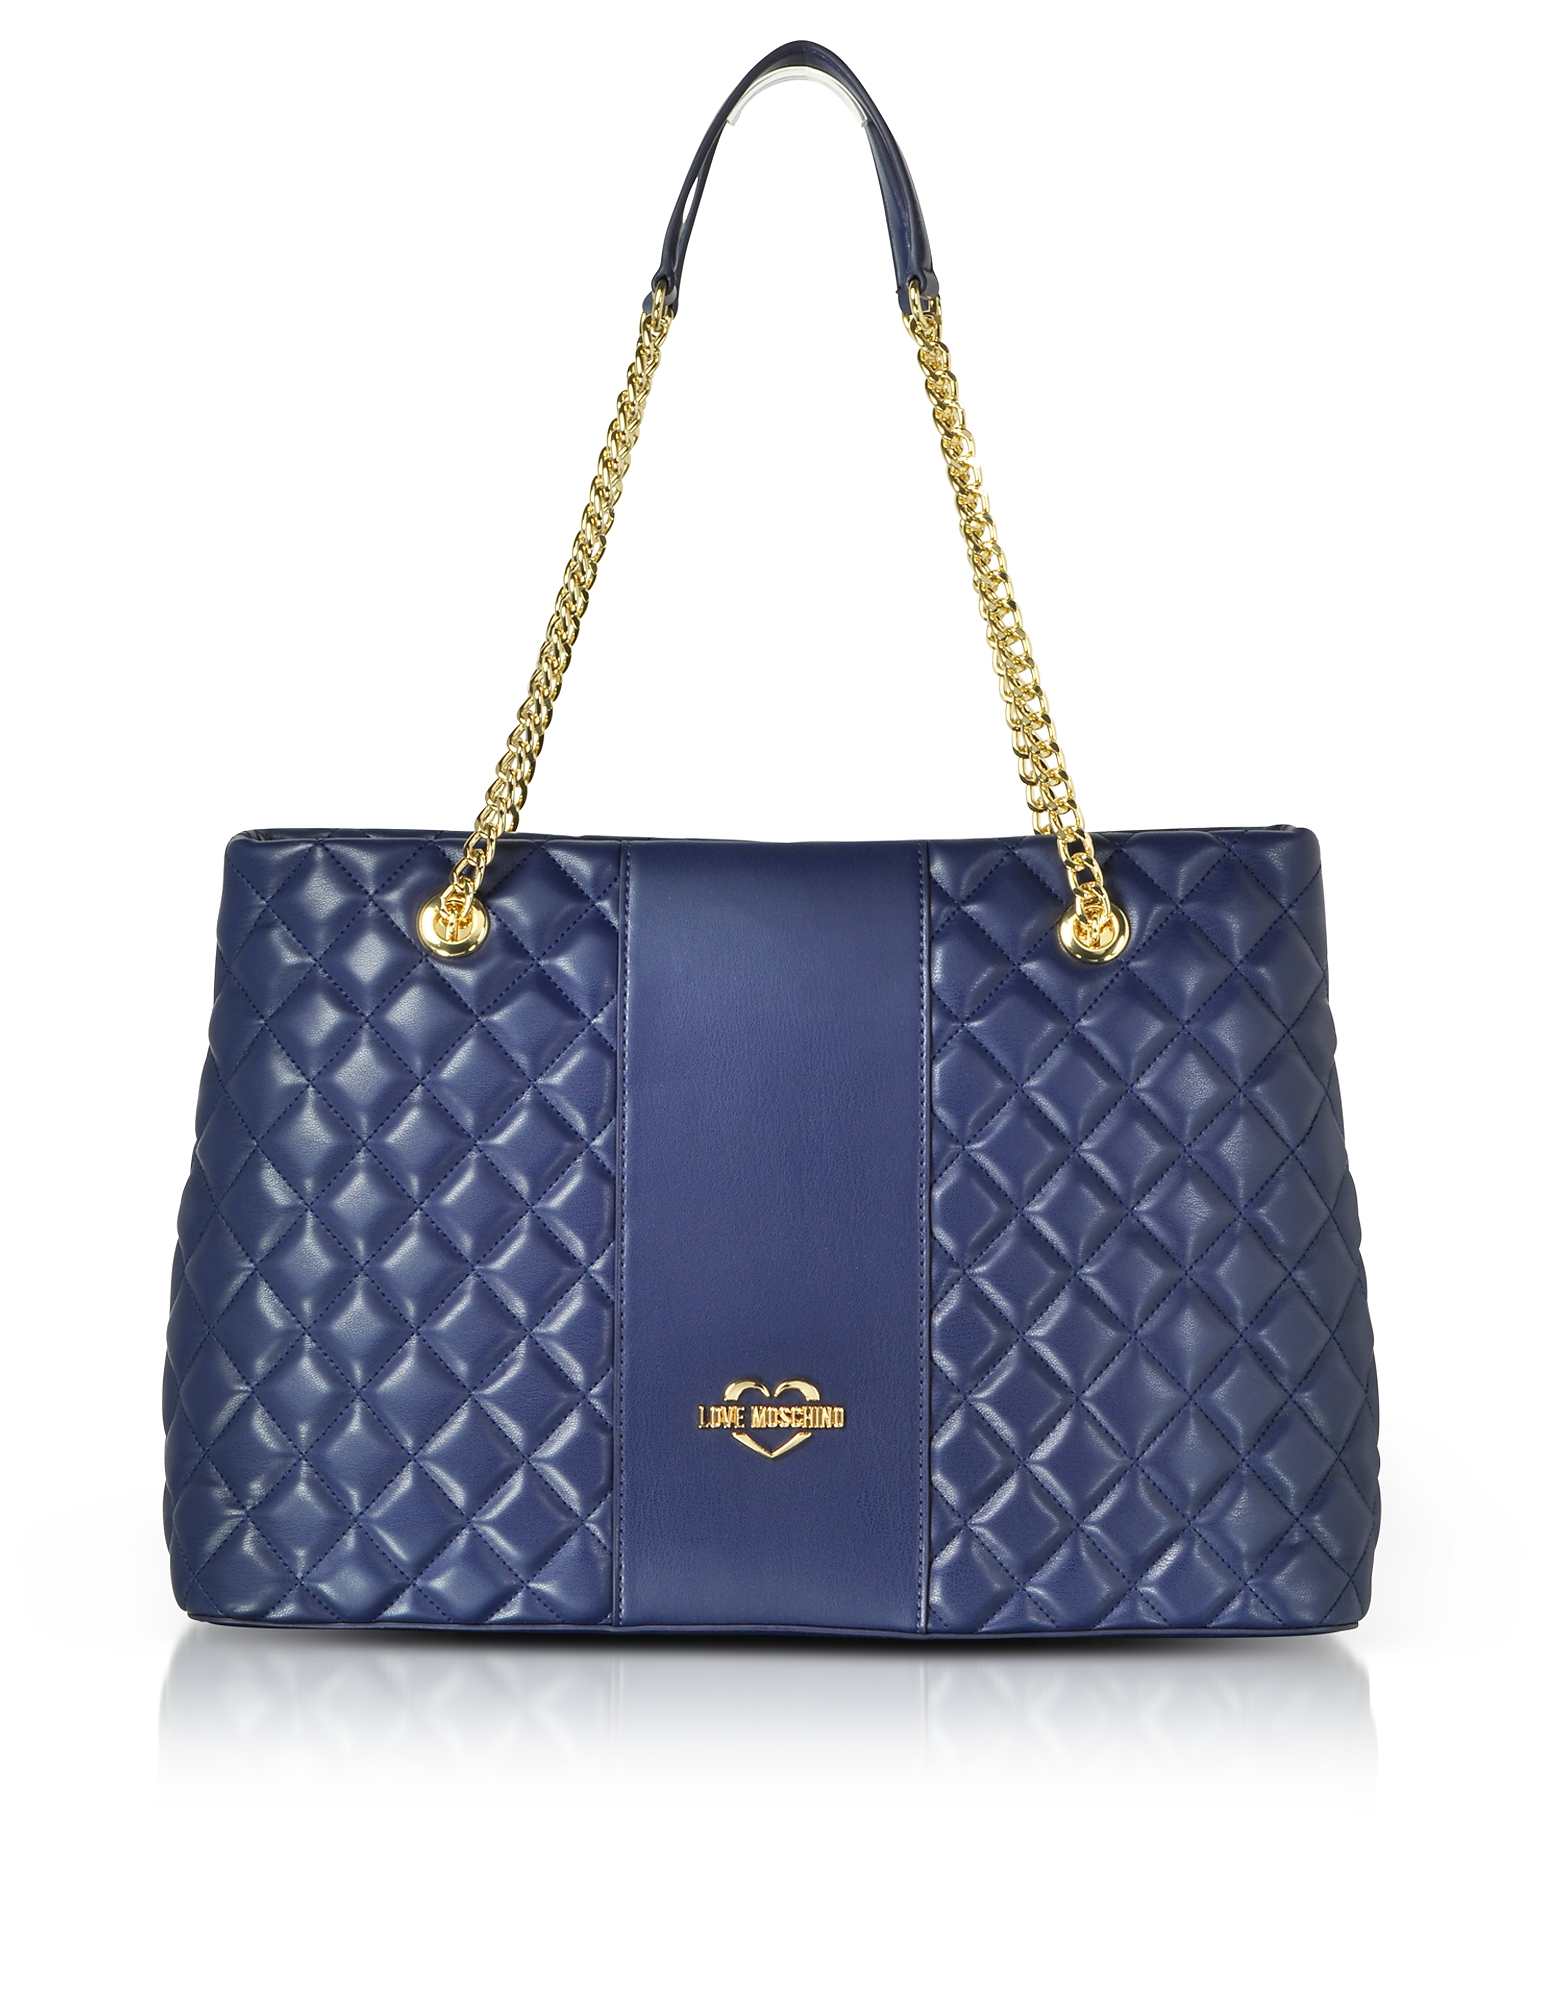 LOVE MOSCHINO Quilted Eco Leather Tote Bag in Blue